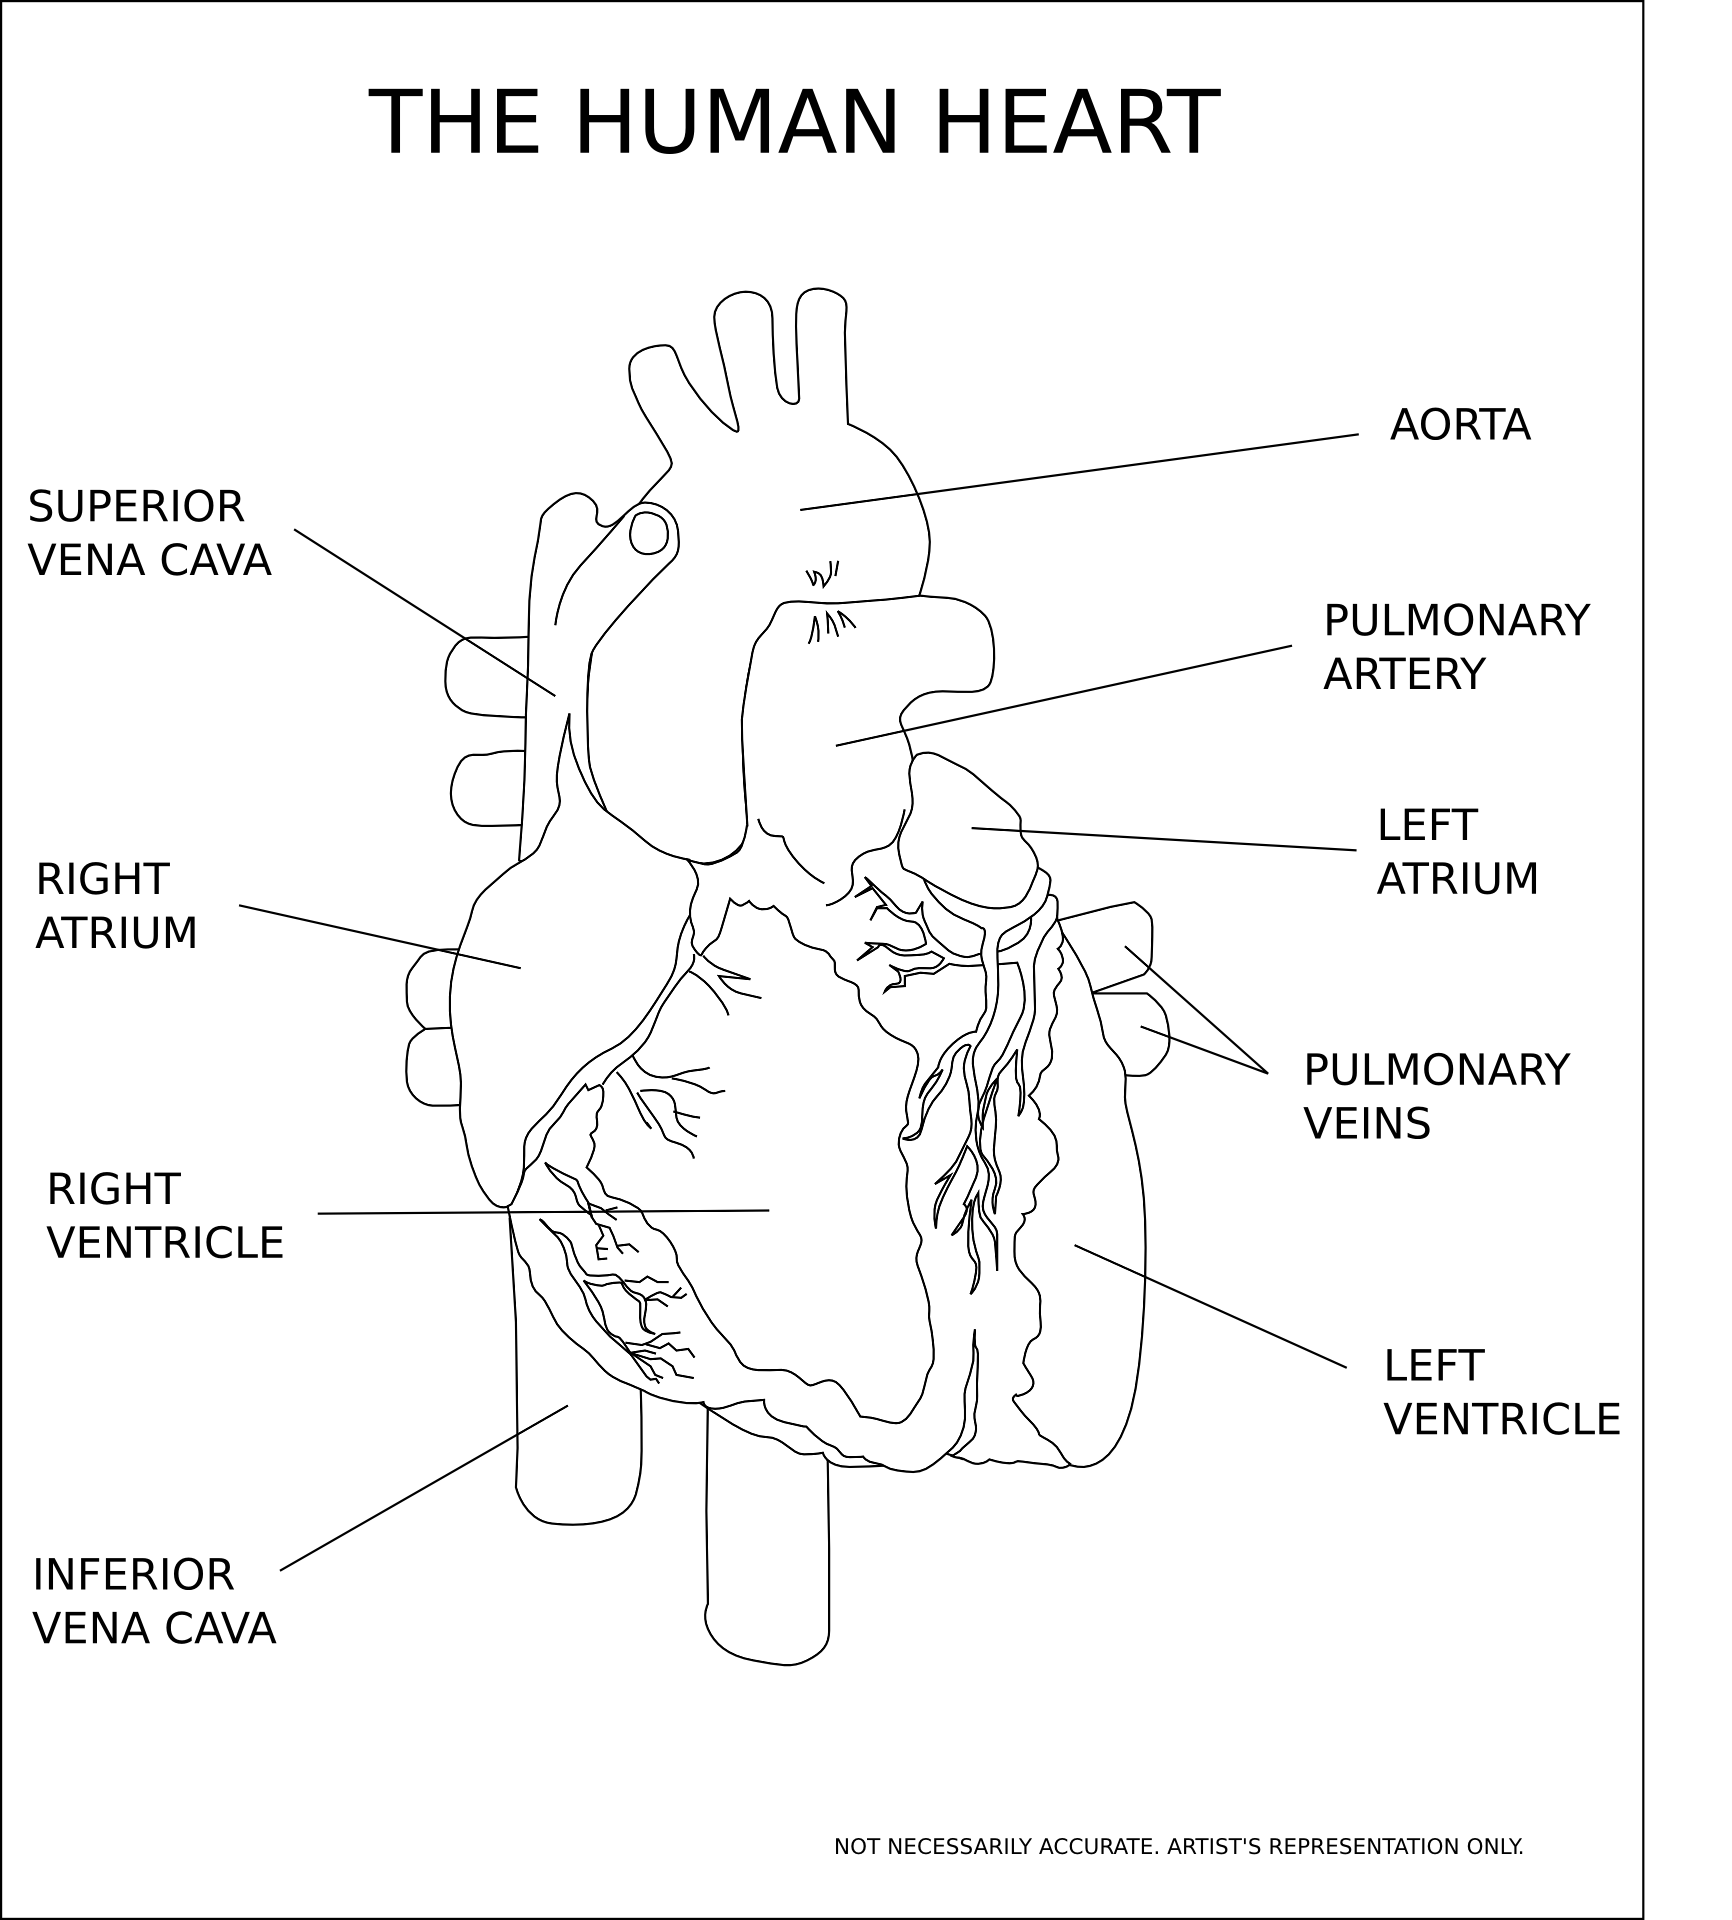 Human heart structure and anatomy